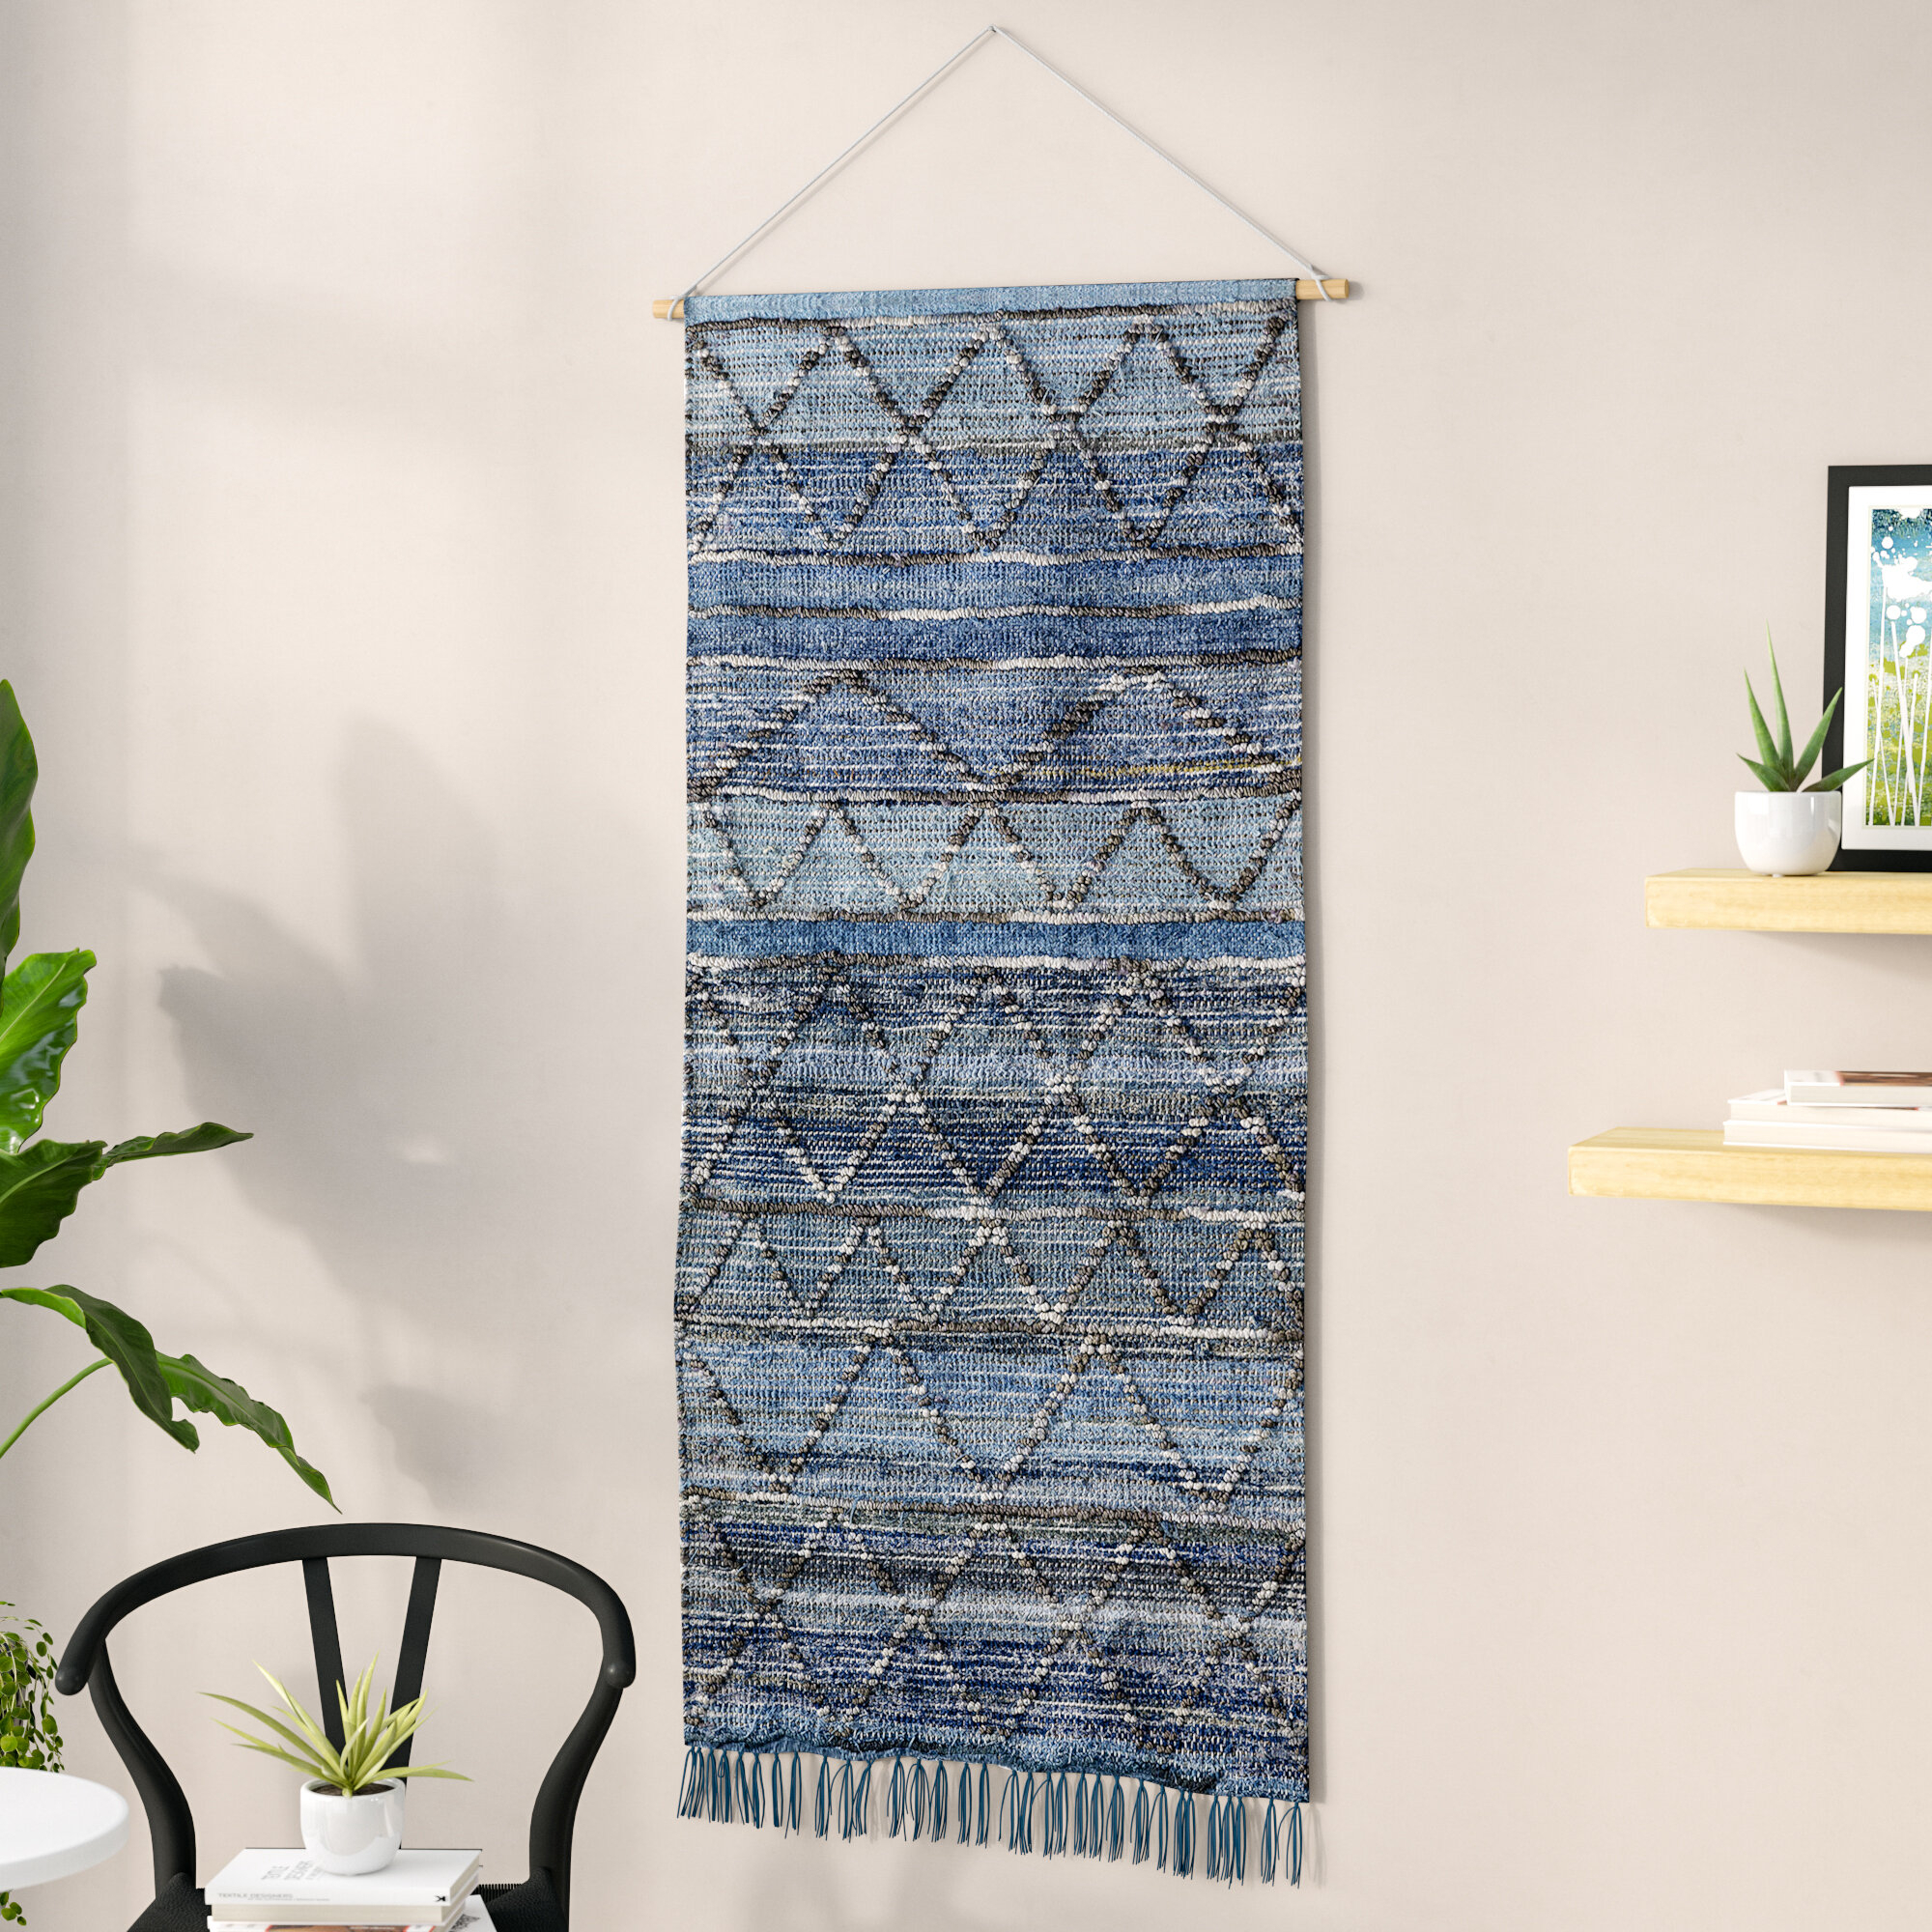 Blended Fabric Wall Hanging With Hanging Accessories Included For Most Popular Blended Fabric Saber Wall Hangings With Rod (View 1 of 20)